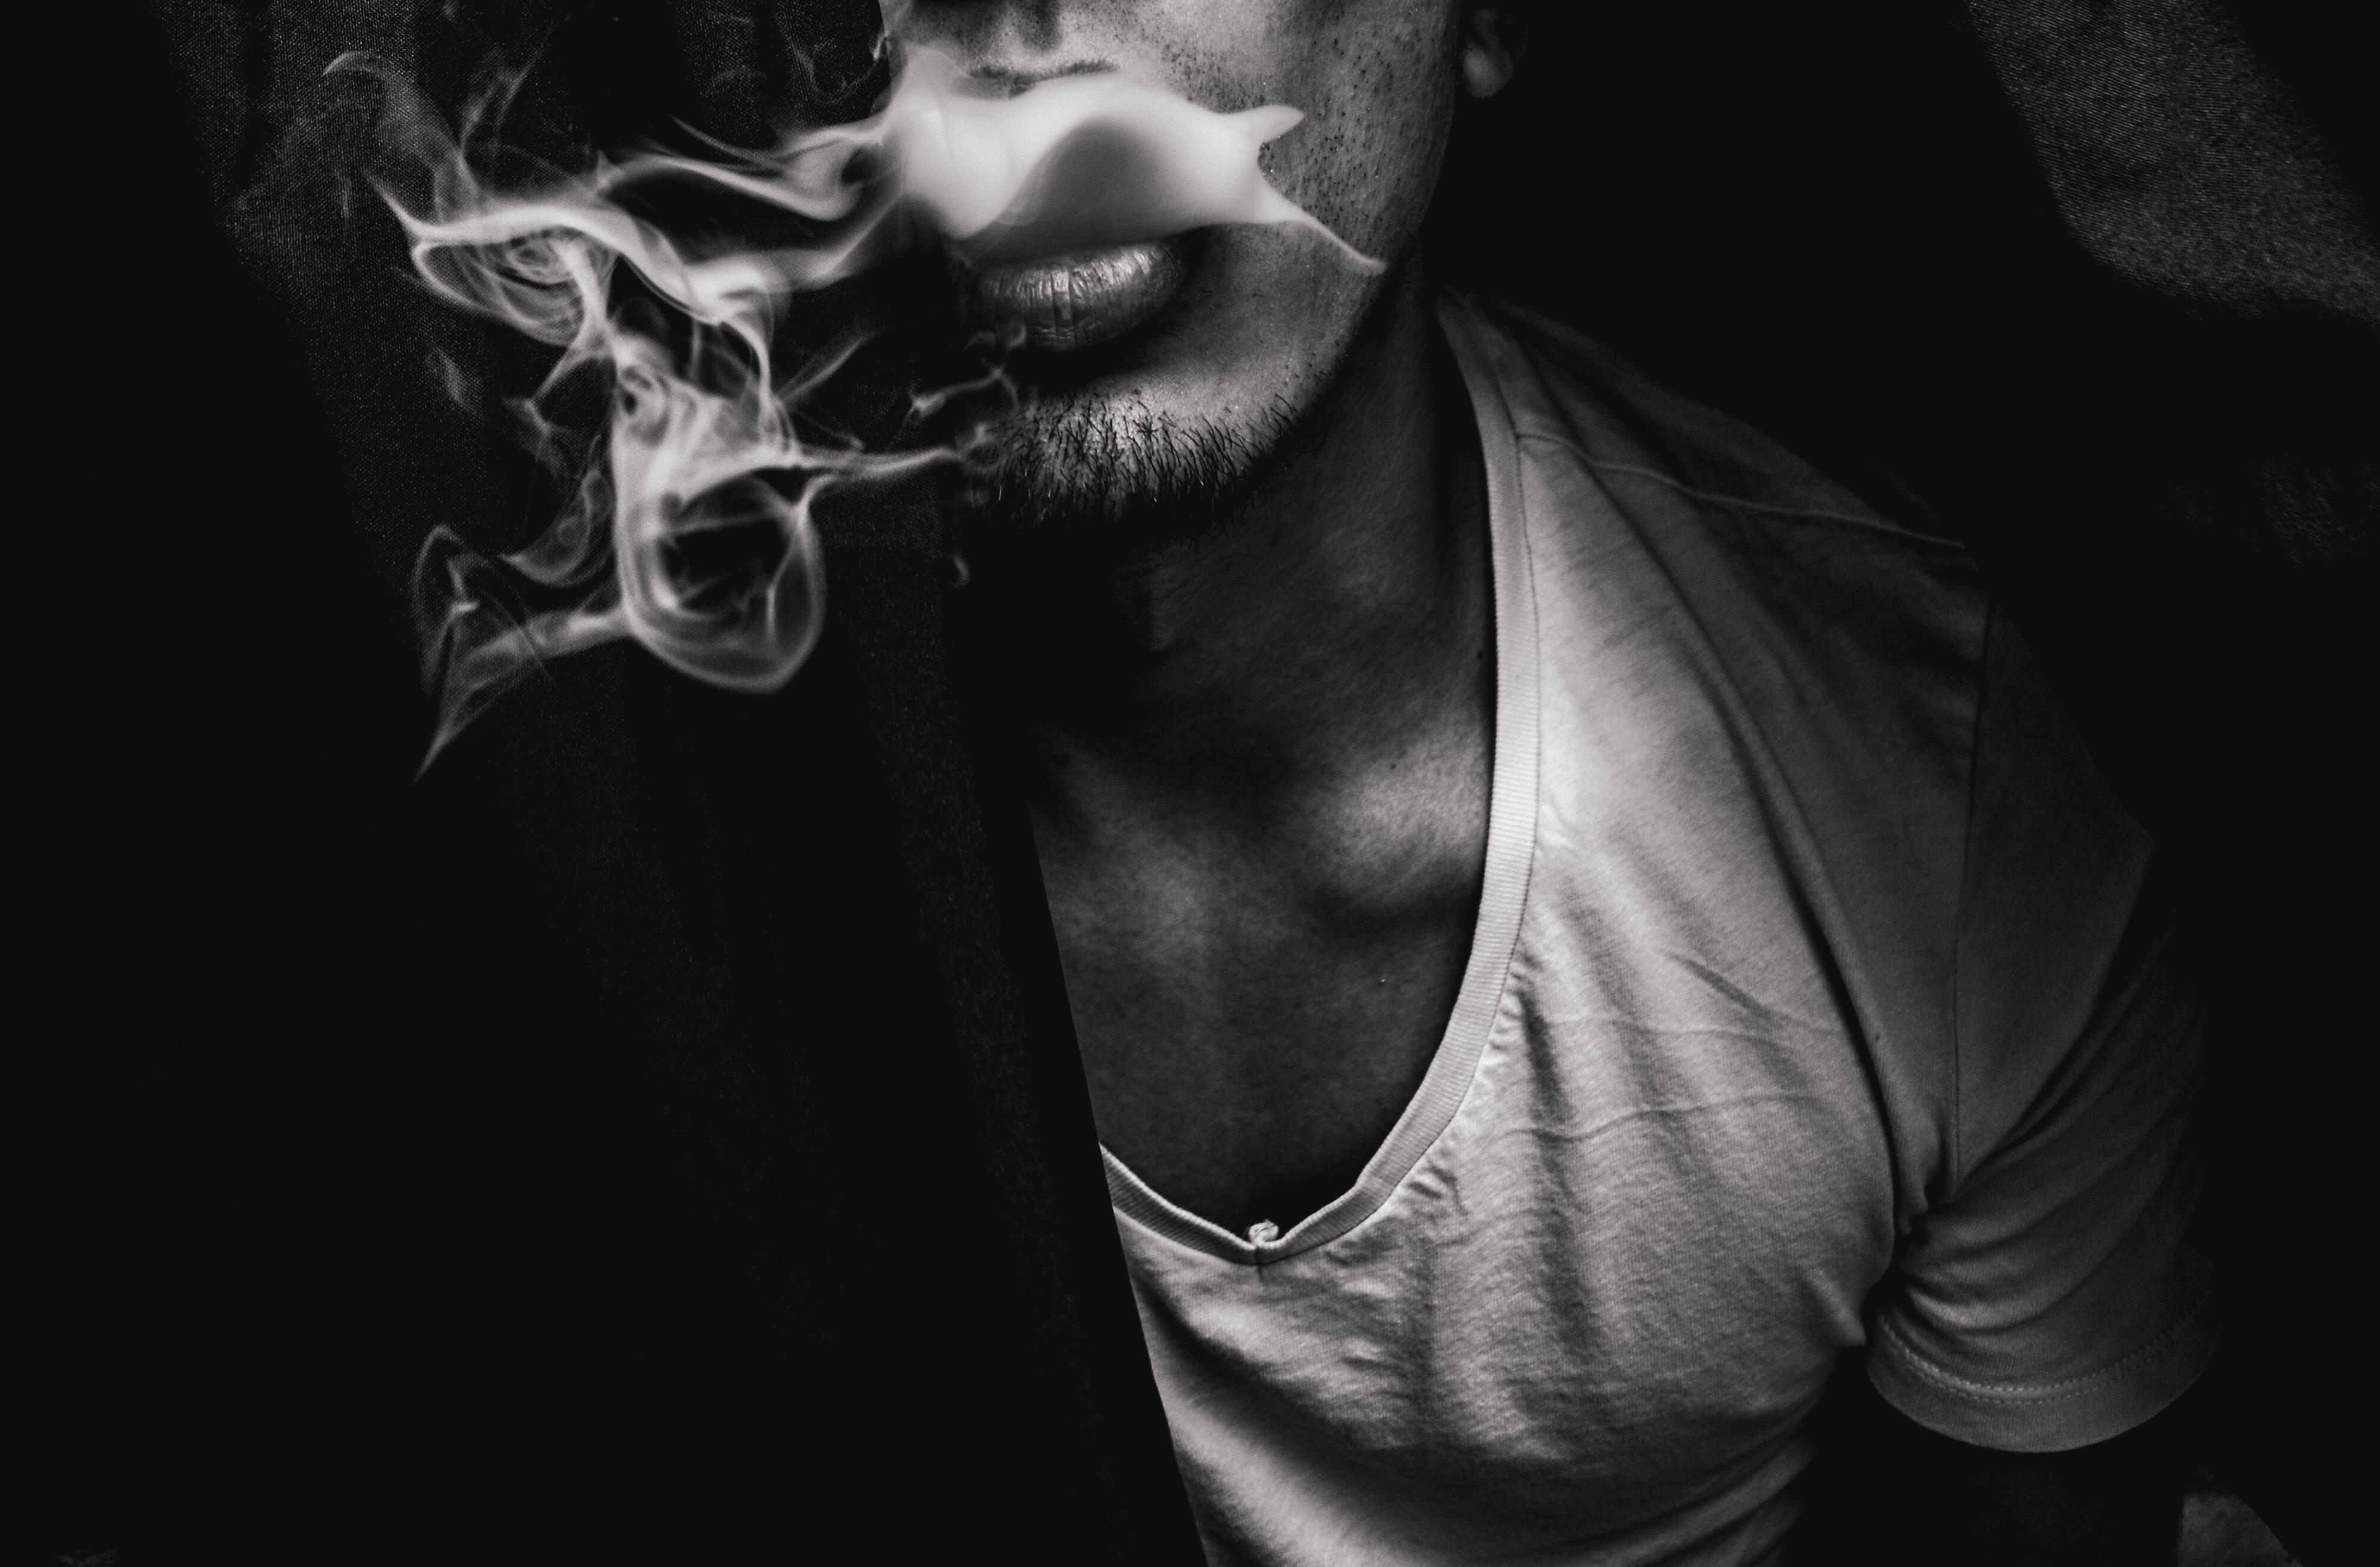 Should Cannabis Users Worry About Secondhand Smoke Exposure in Their Children?